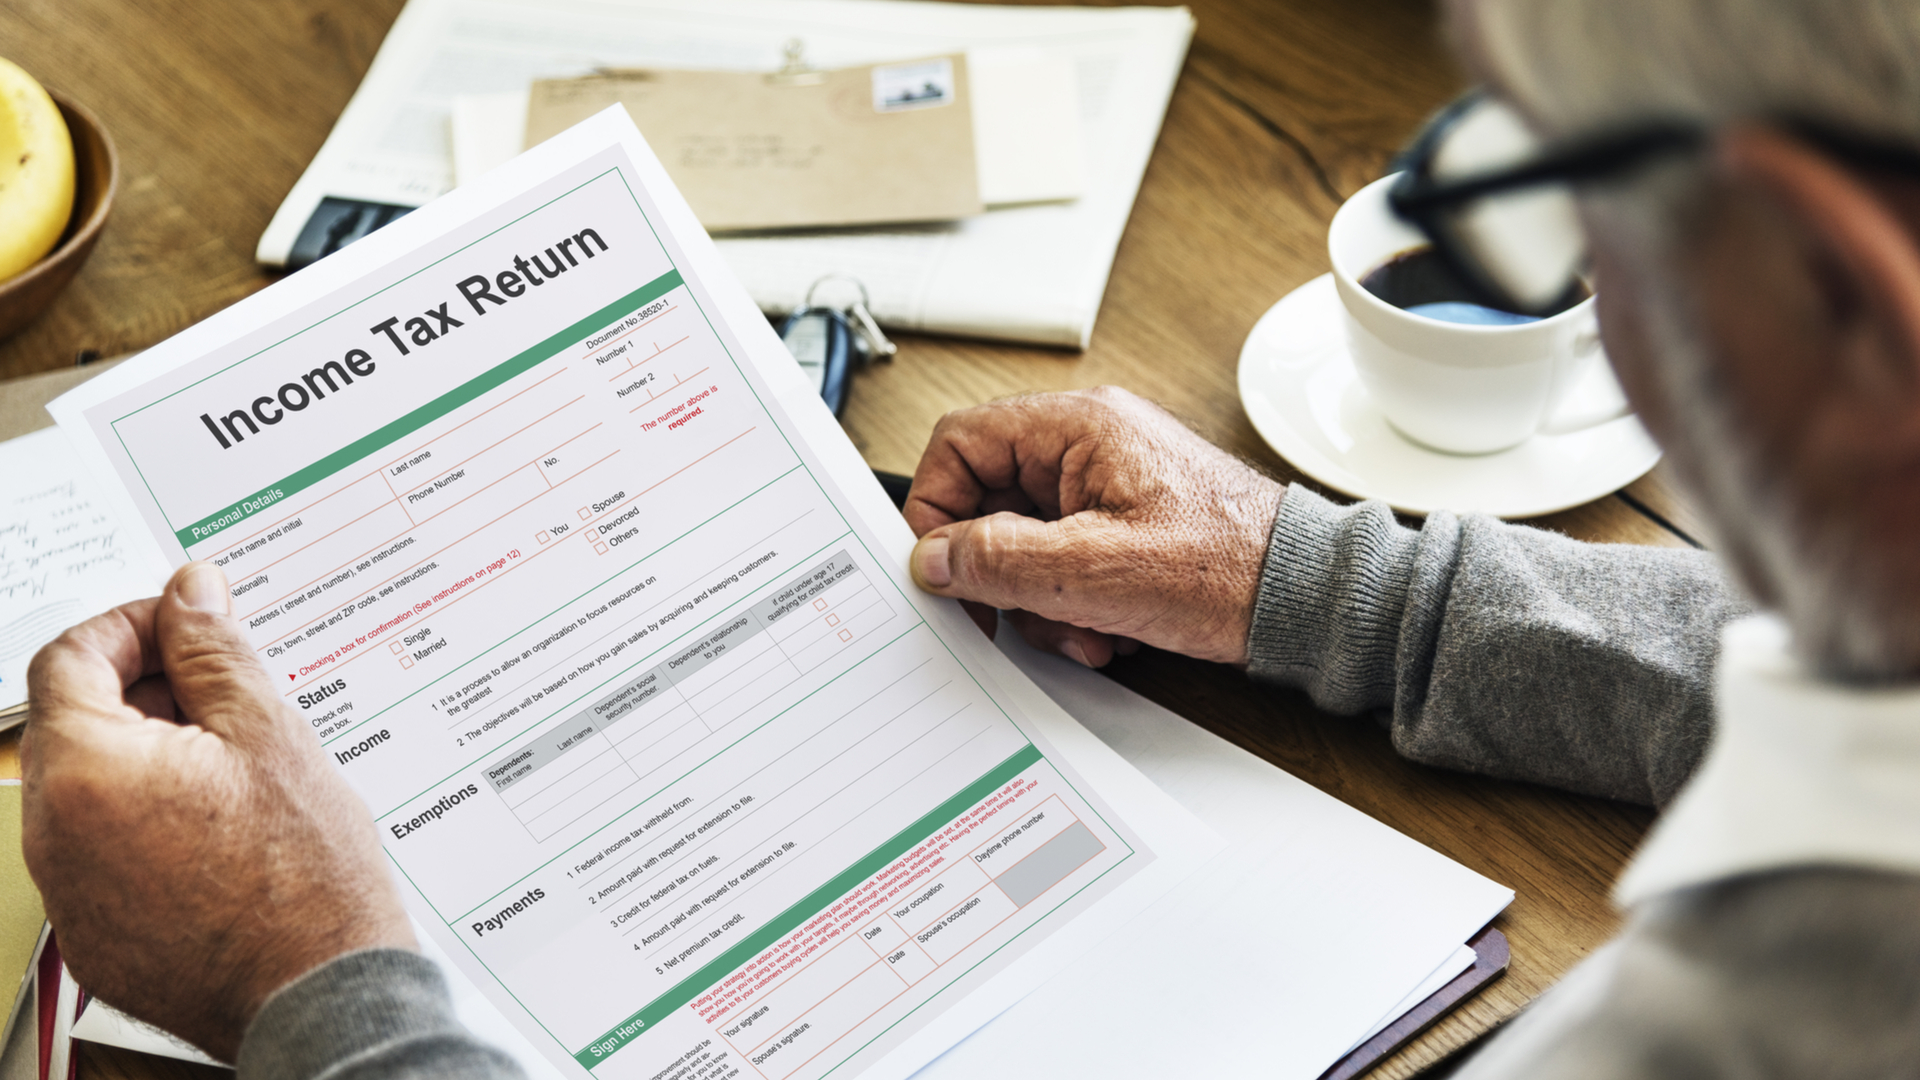 Itemize or standard deduction?